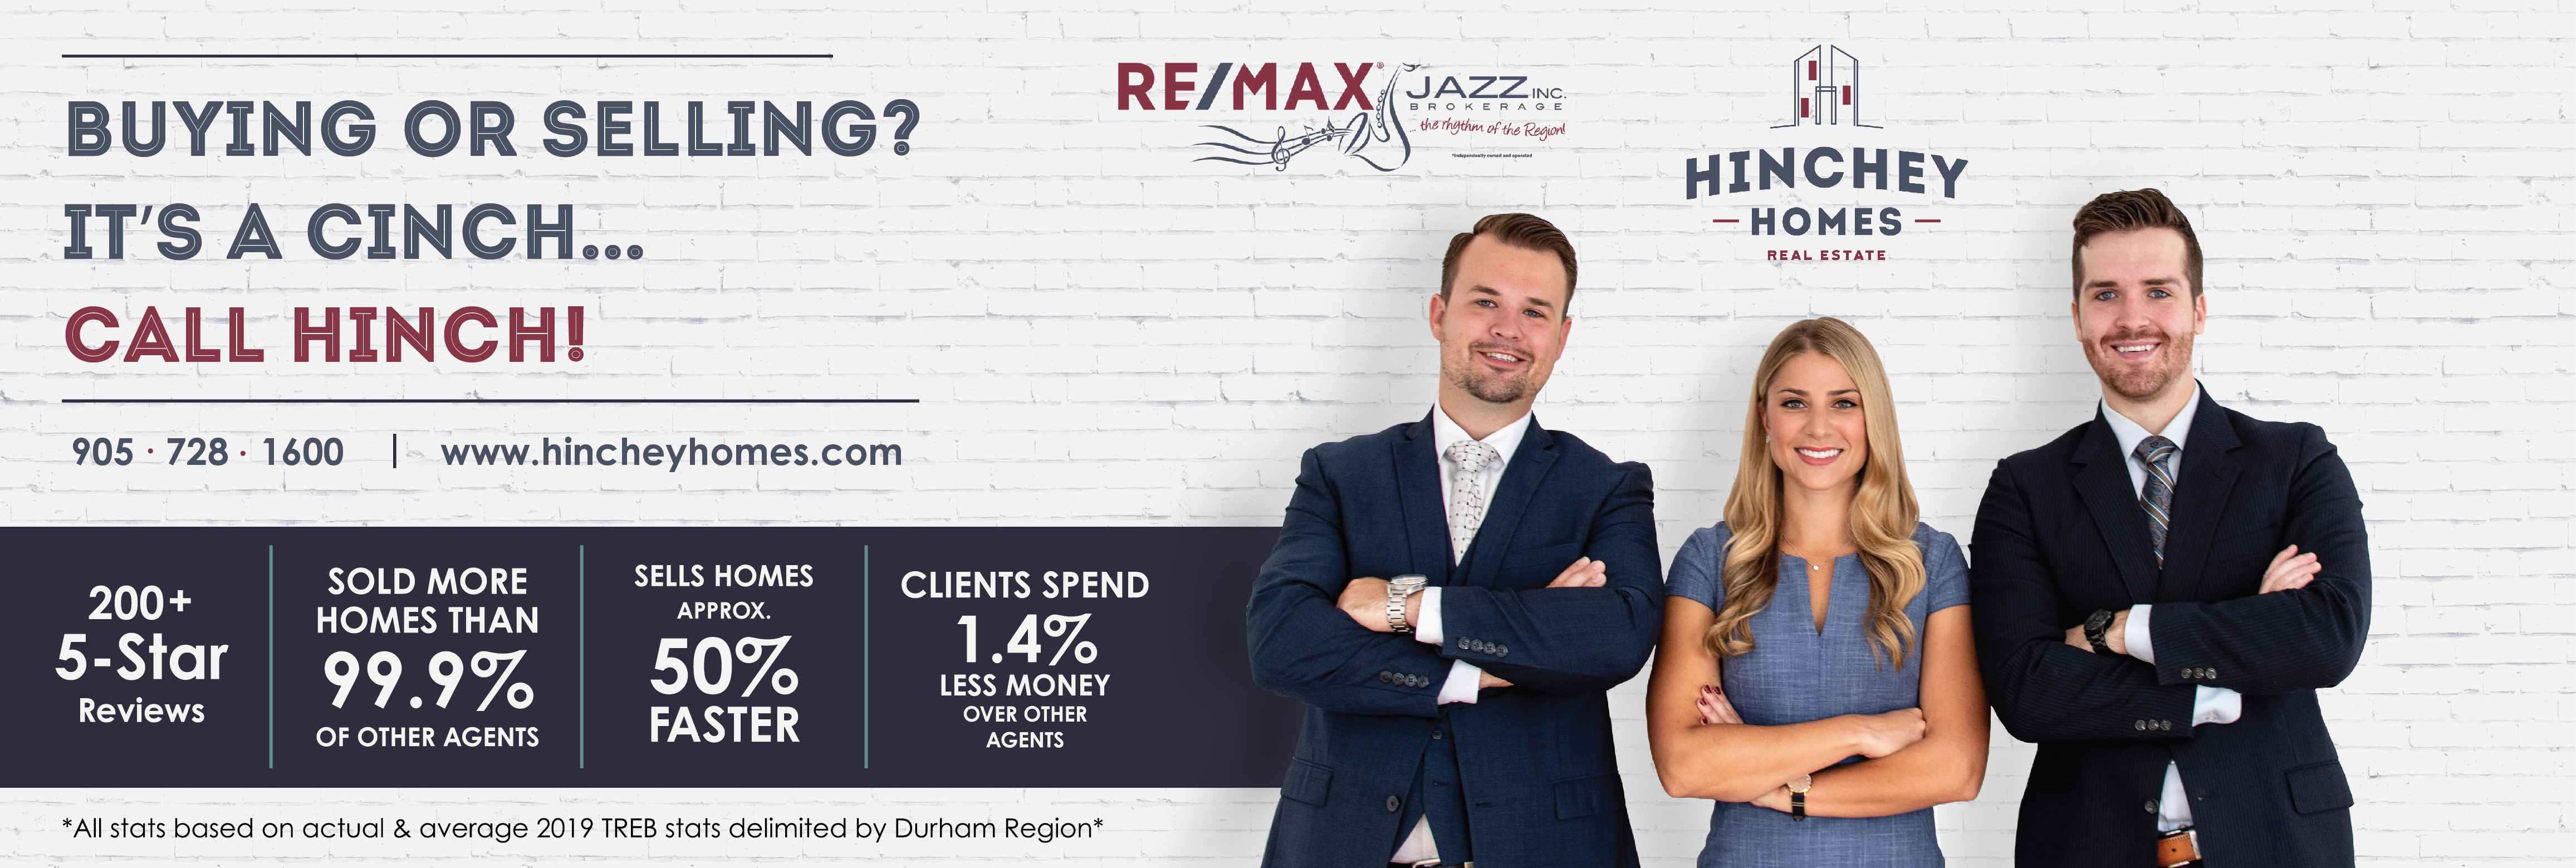 The Hinchey Homes Team - Re/Max Jazz reviews | Real Estate Services at 193 King Street East - Oshawa ON